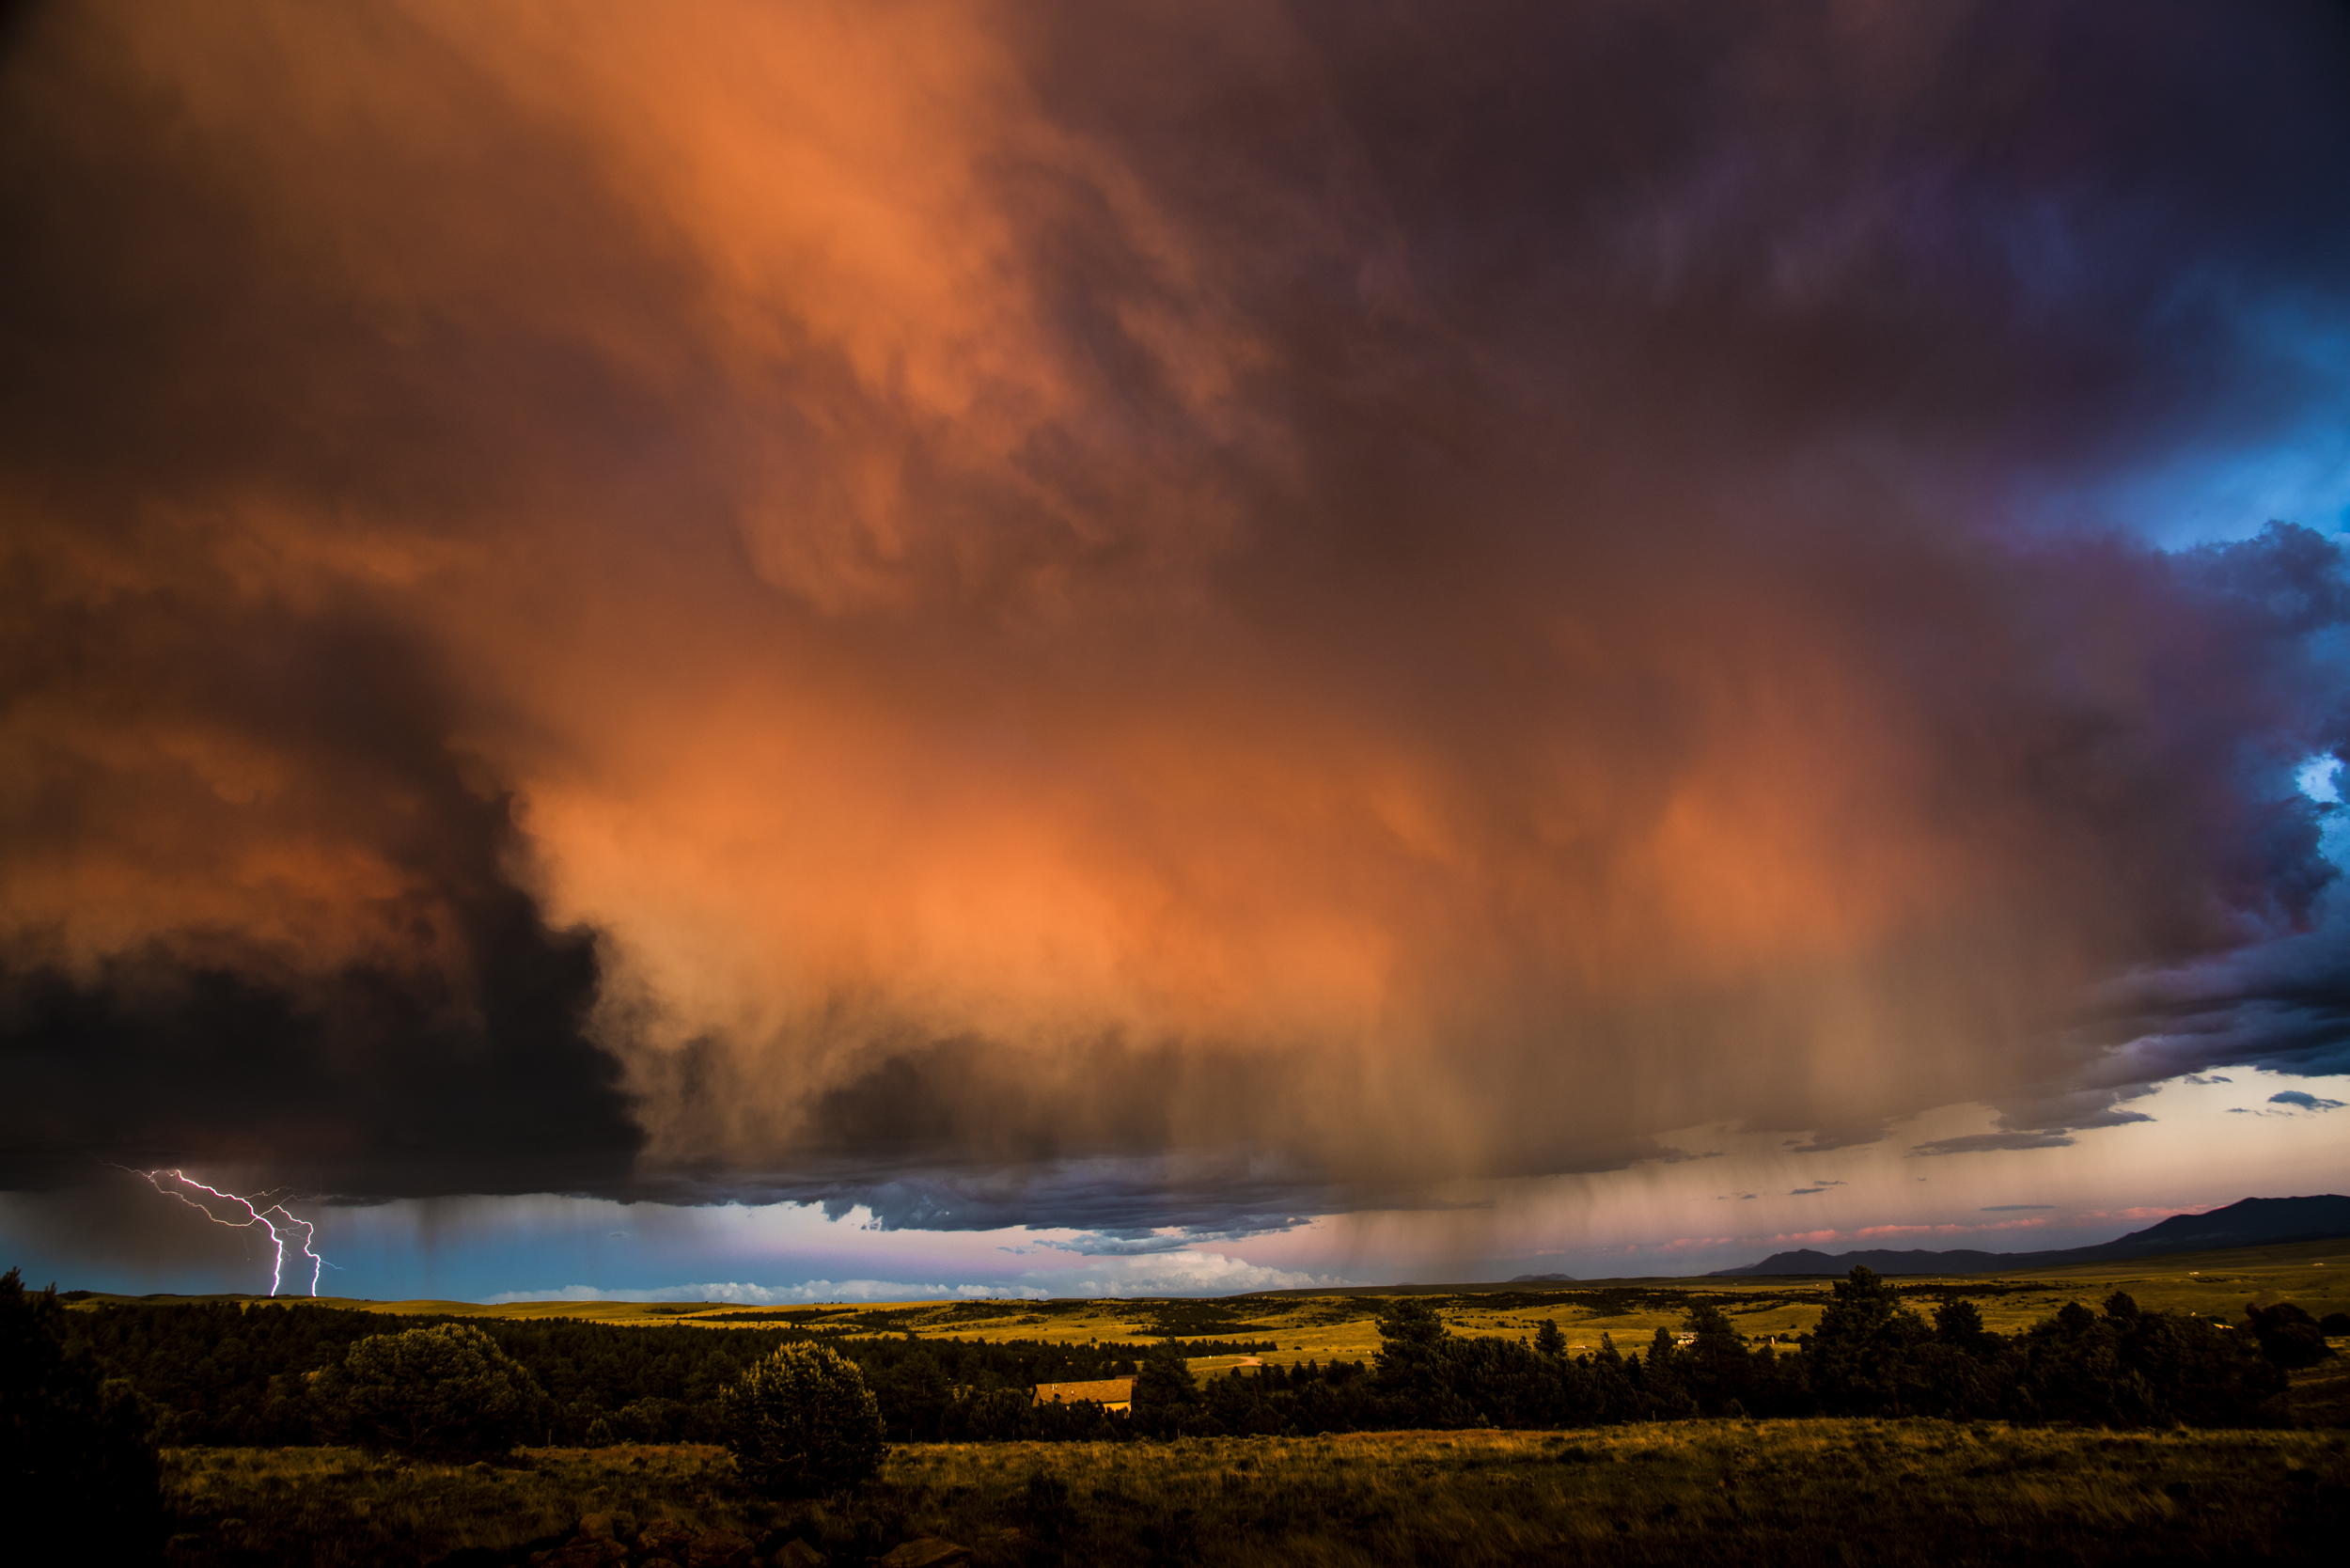 Lightning Storm over Valley in Colorado